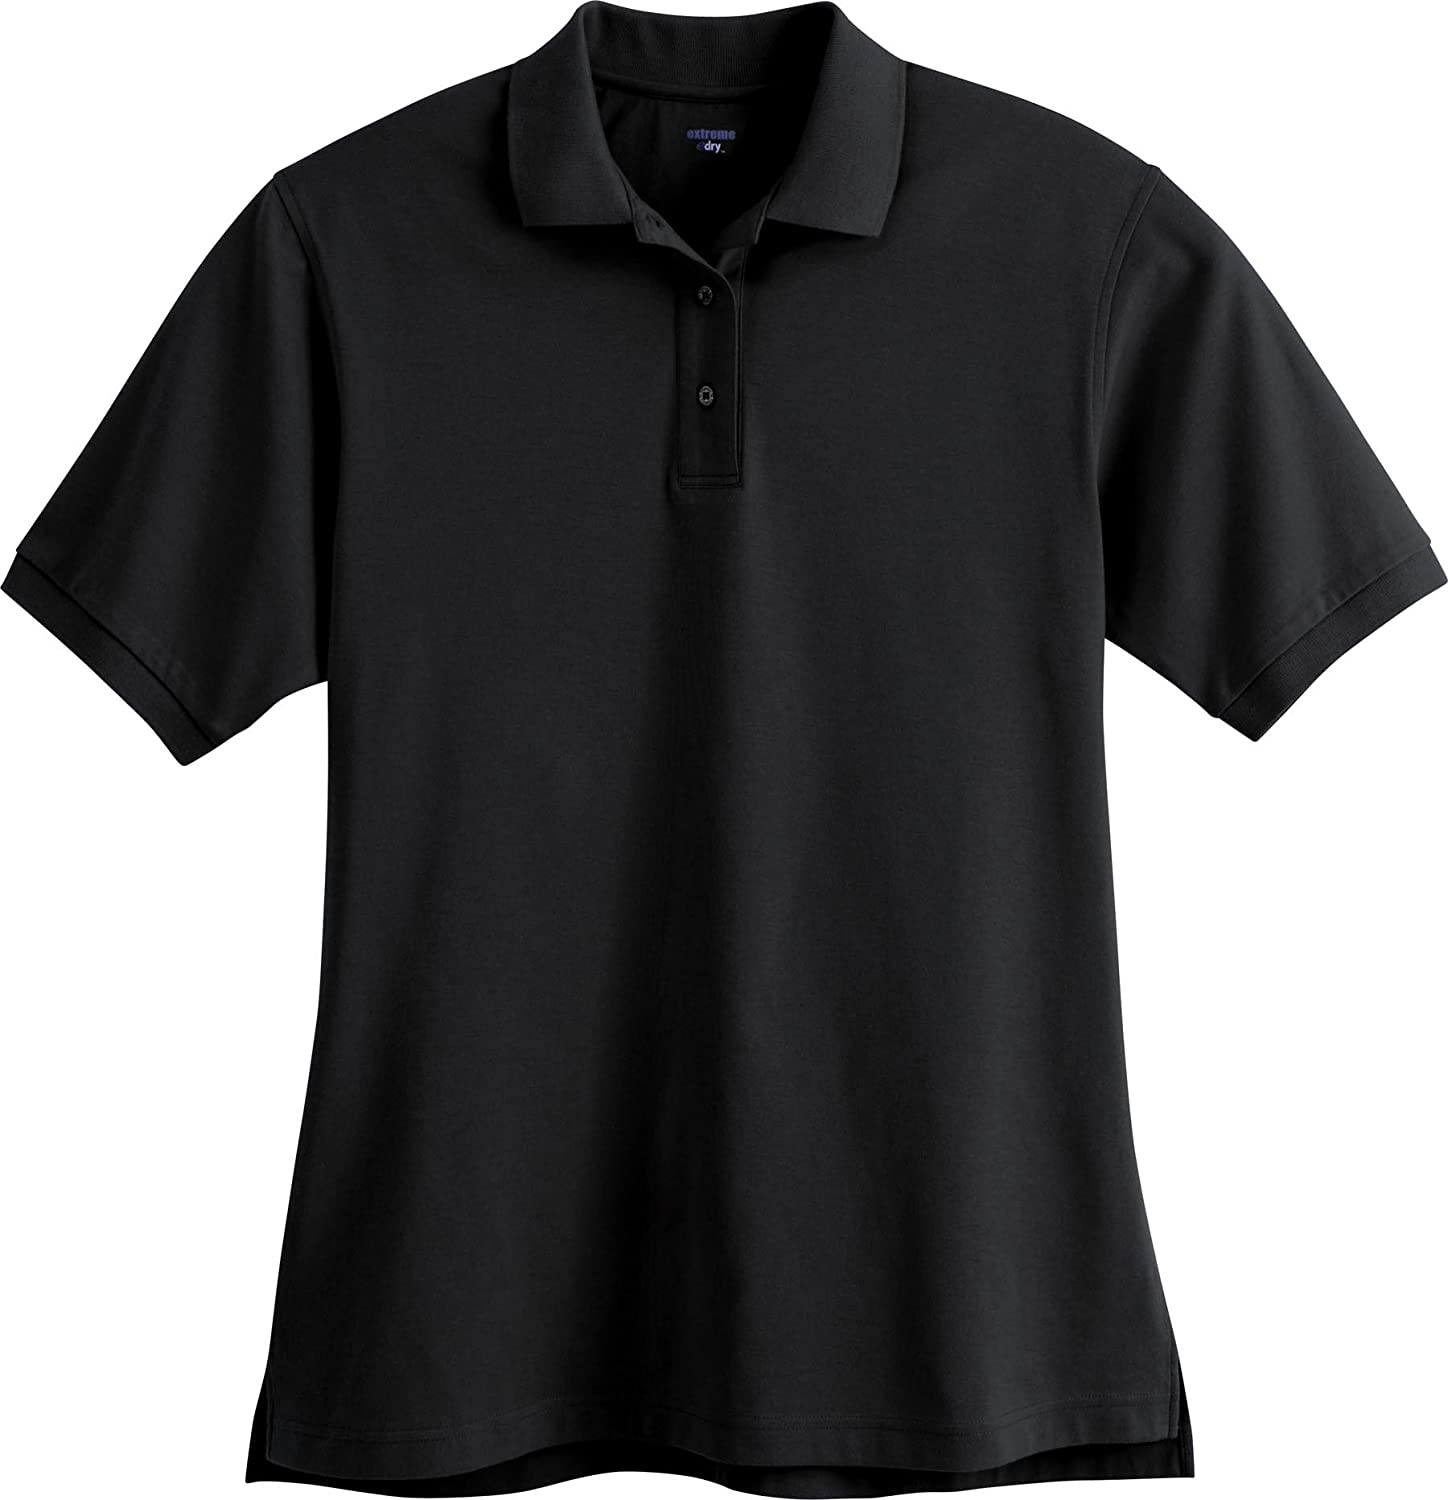 Ash City Extreme Ladies Edry&Trade; Double Knit Polo Shirt